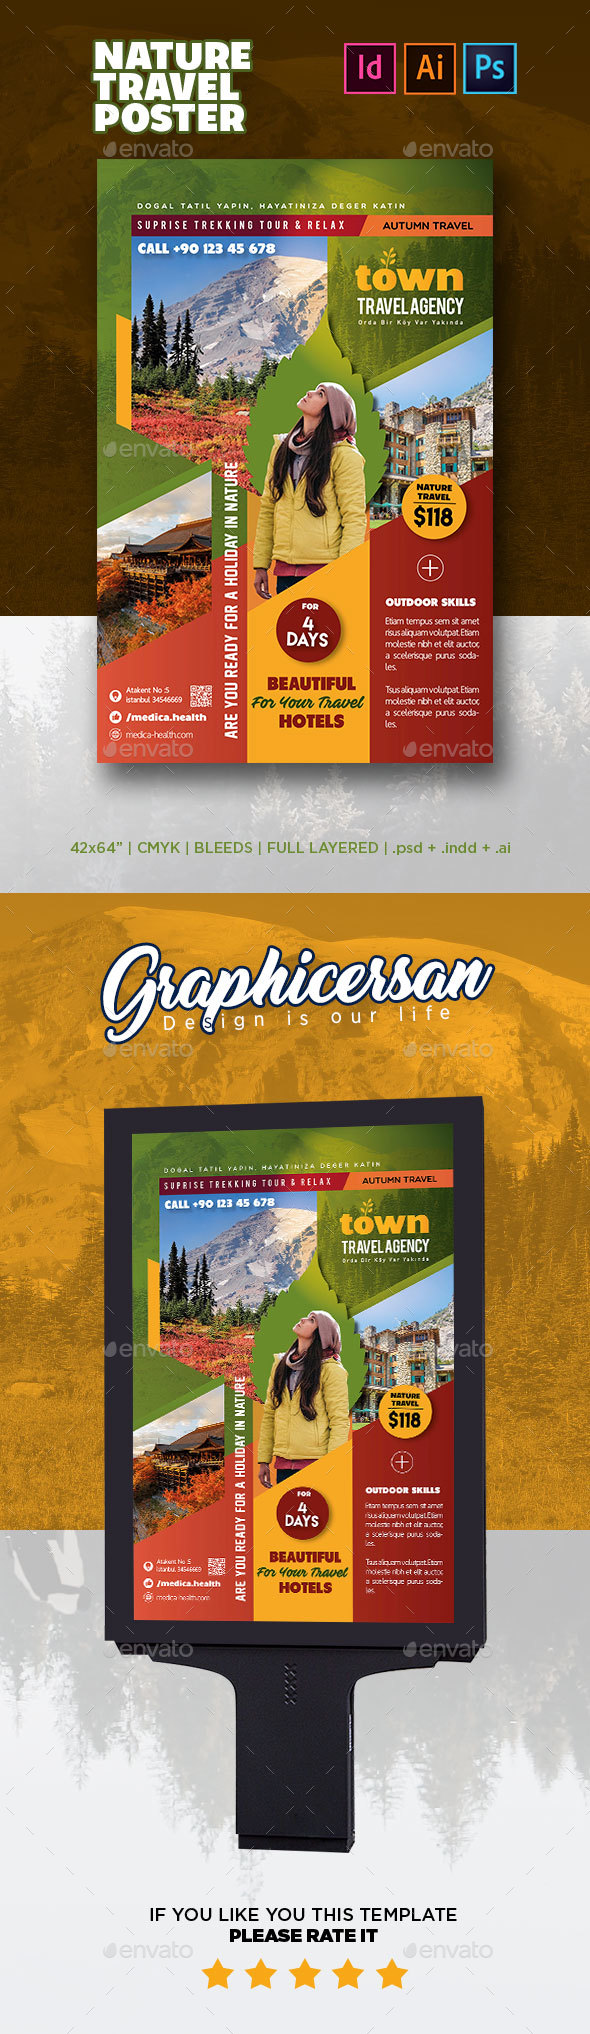 GraphicRiver Nature Travel Poster 20789256